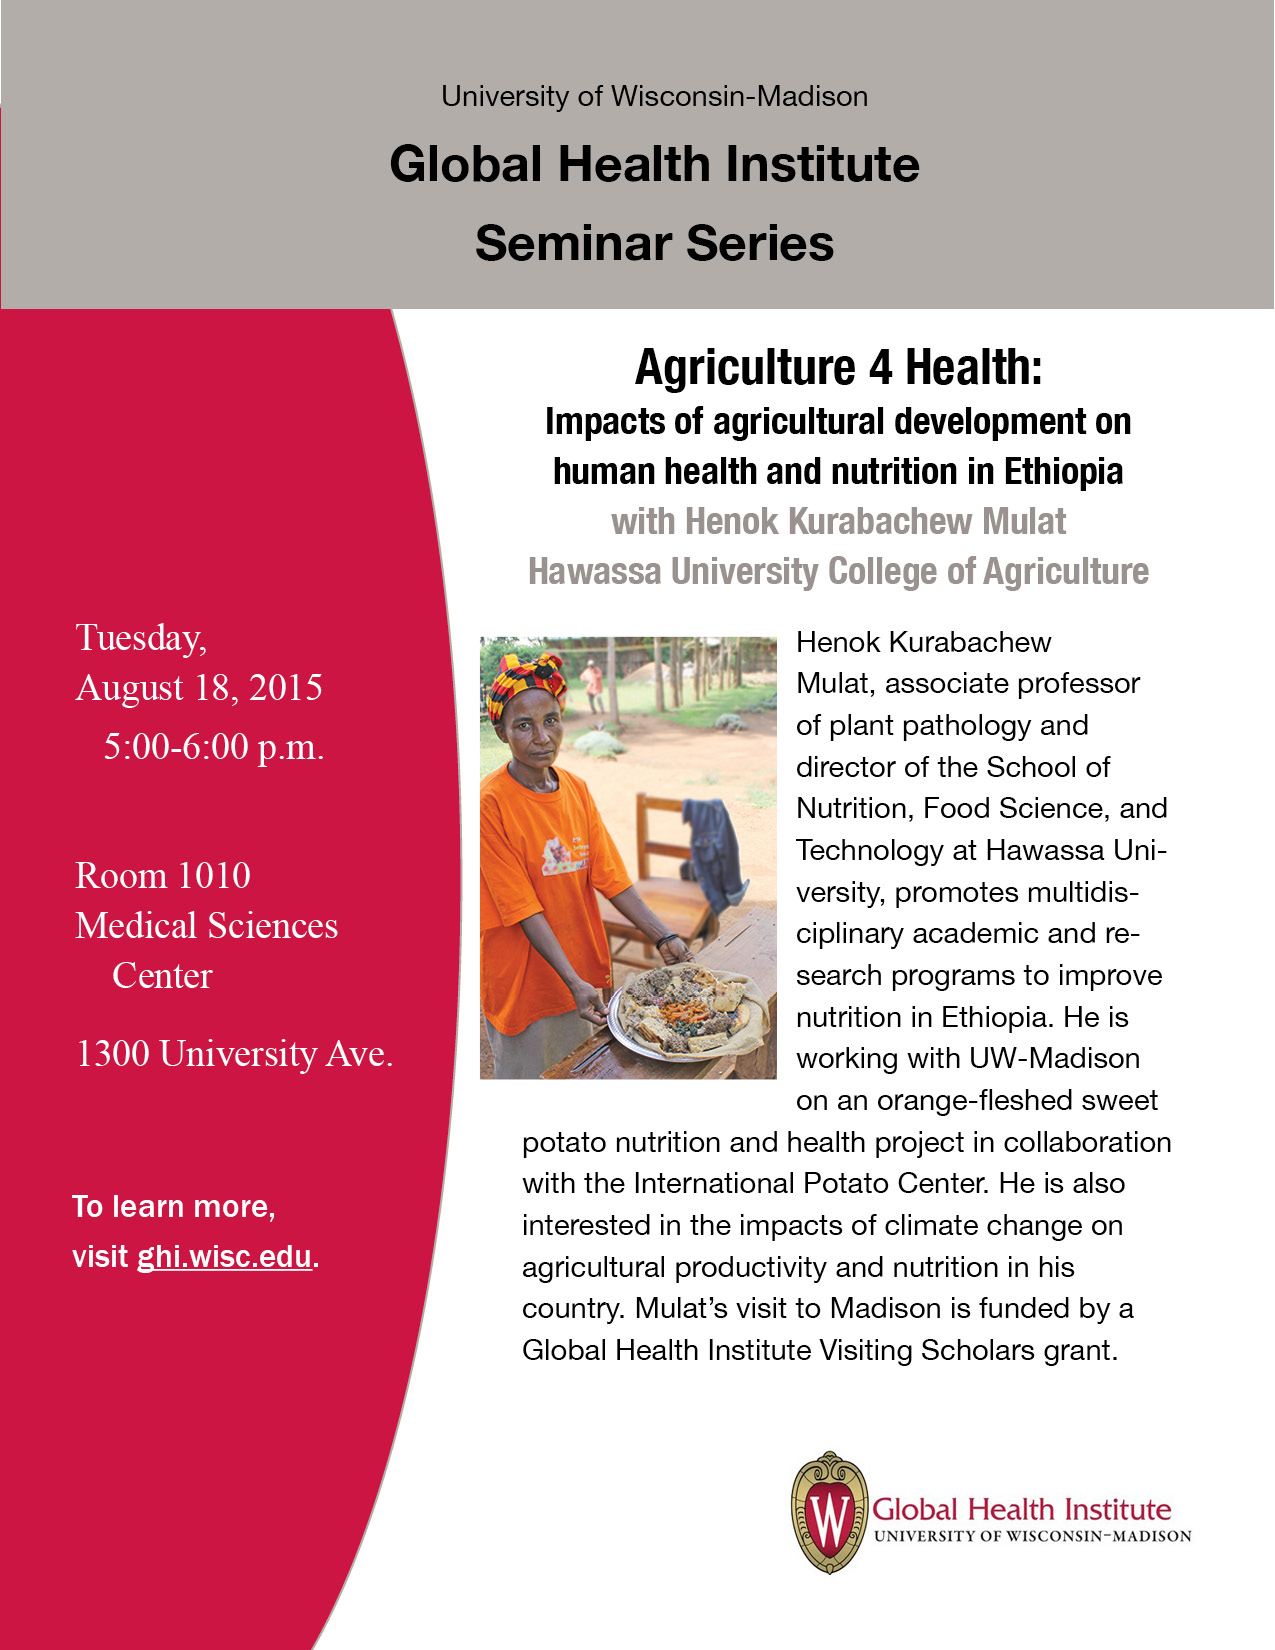 Agriculture 4 Health: Impacts of agricultural development on